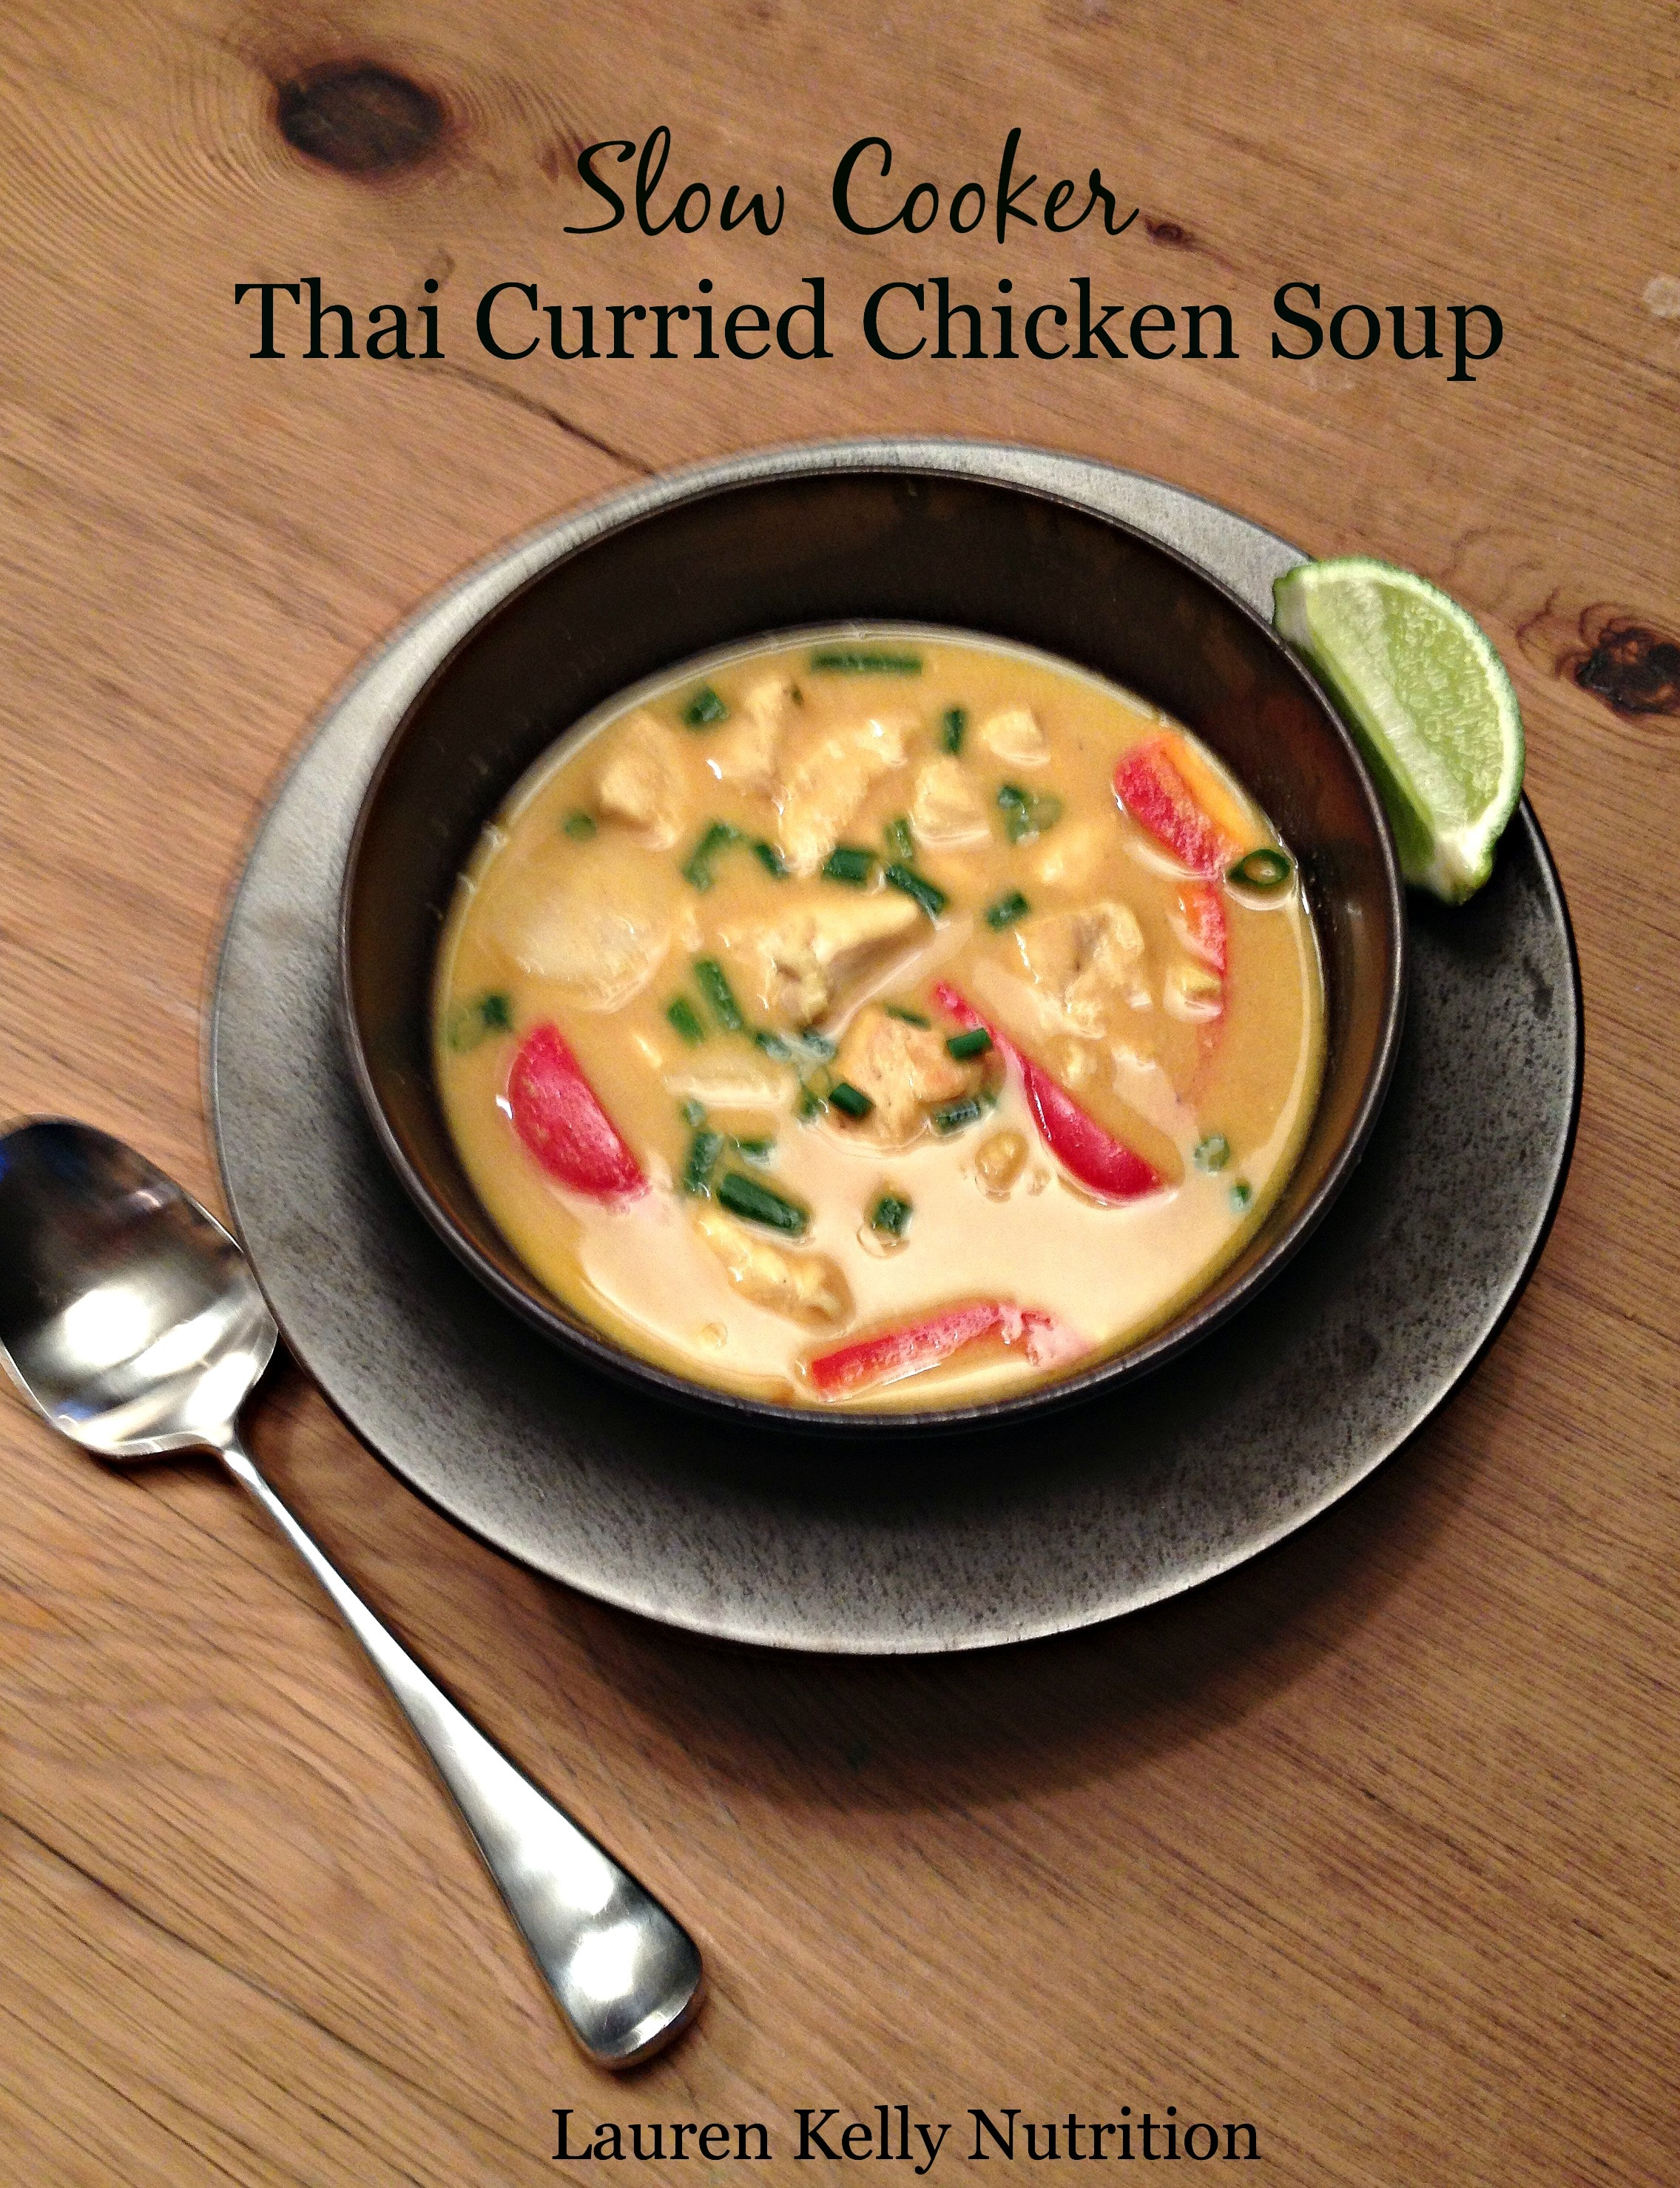 thai curried chicken soup-slow cooker